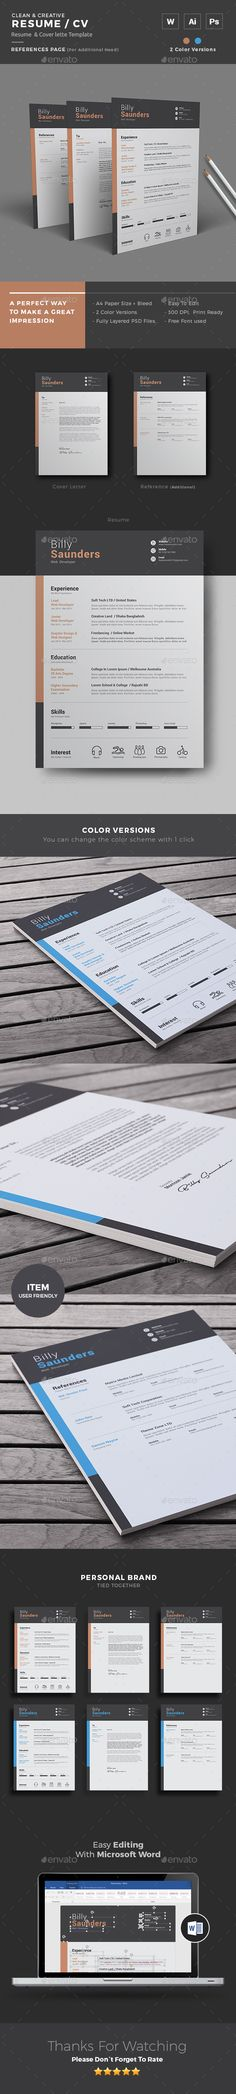 Resume Template With MS Word Resume, Photoshop and Resume templates - ms word resume templates download